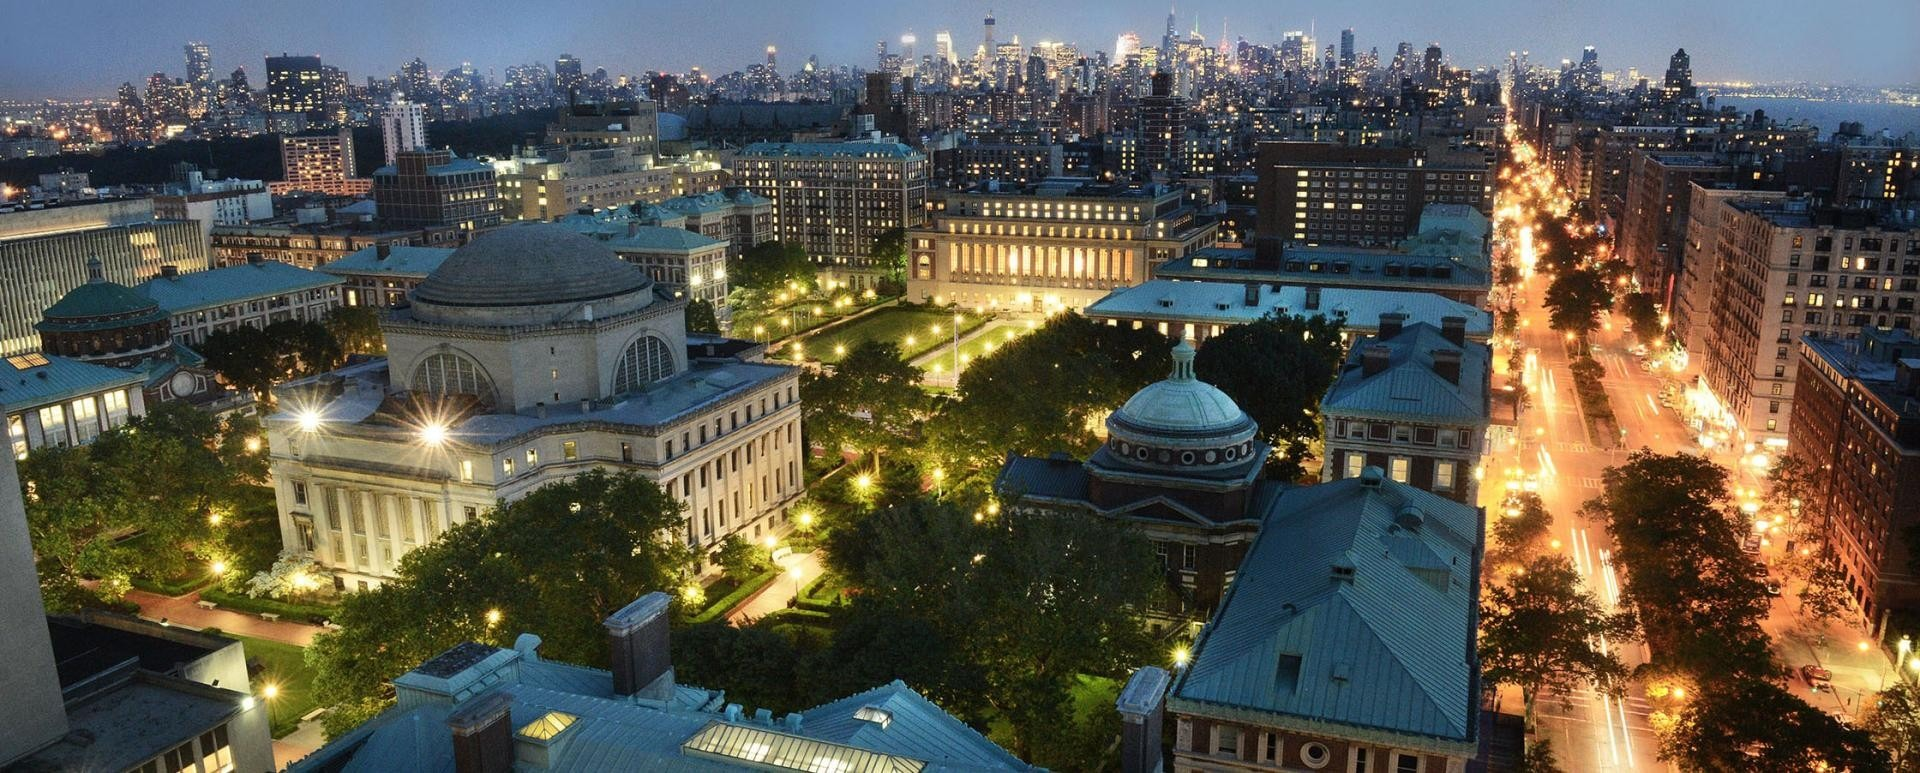 The beautiful city lights at Columbia.